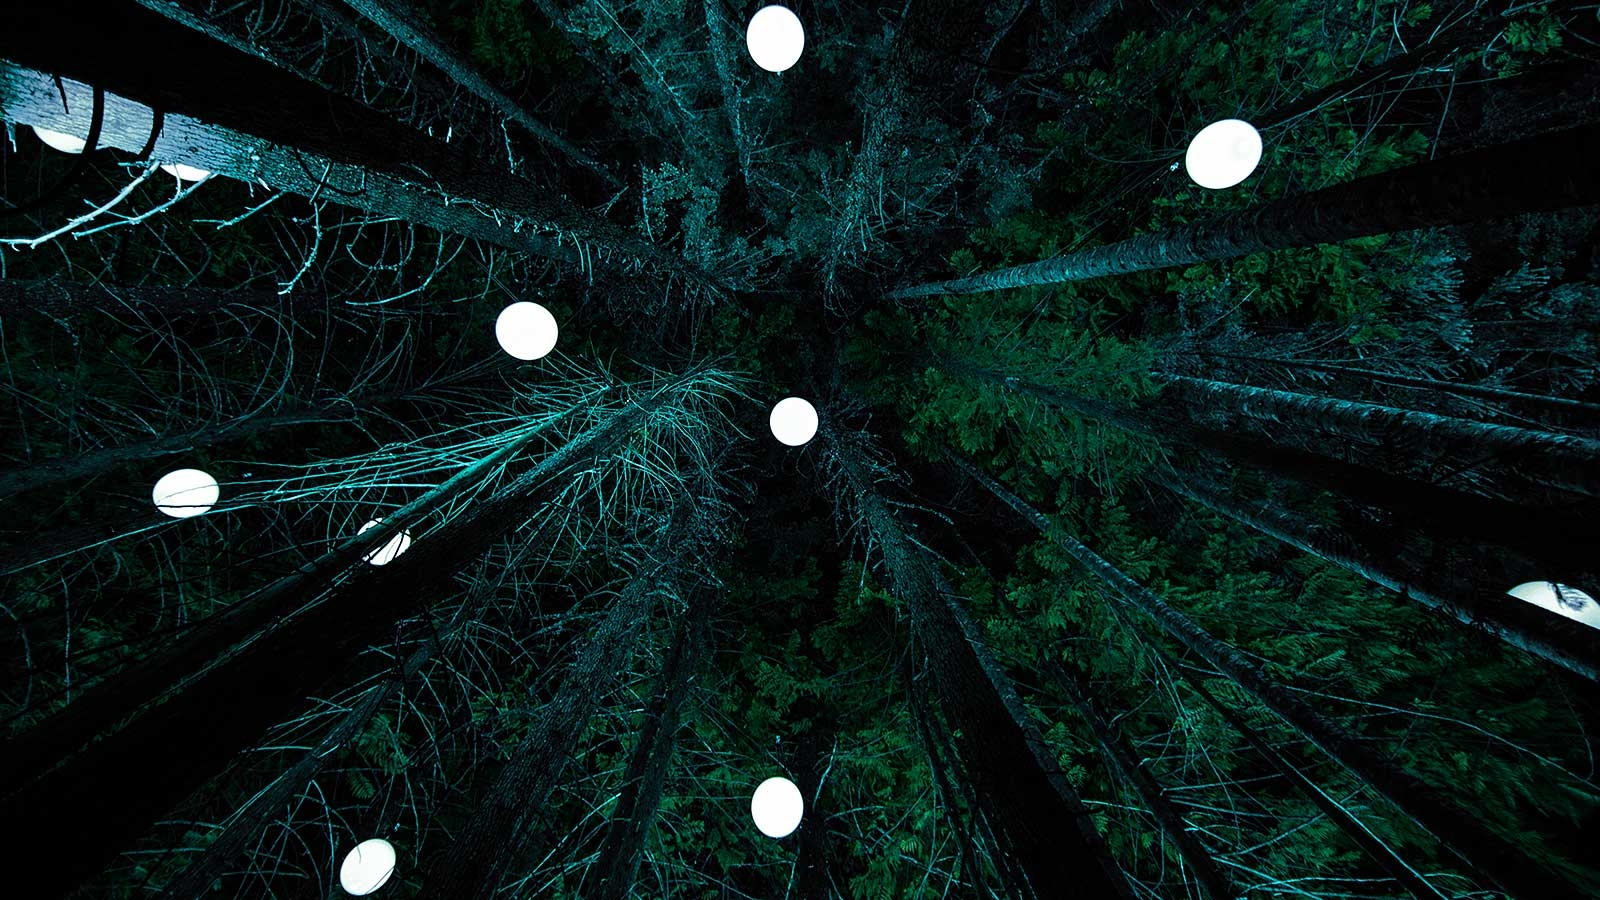 Dark Forrest view to the top of the tress with white lights hanging from the trees